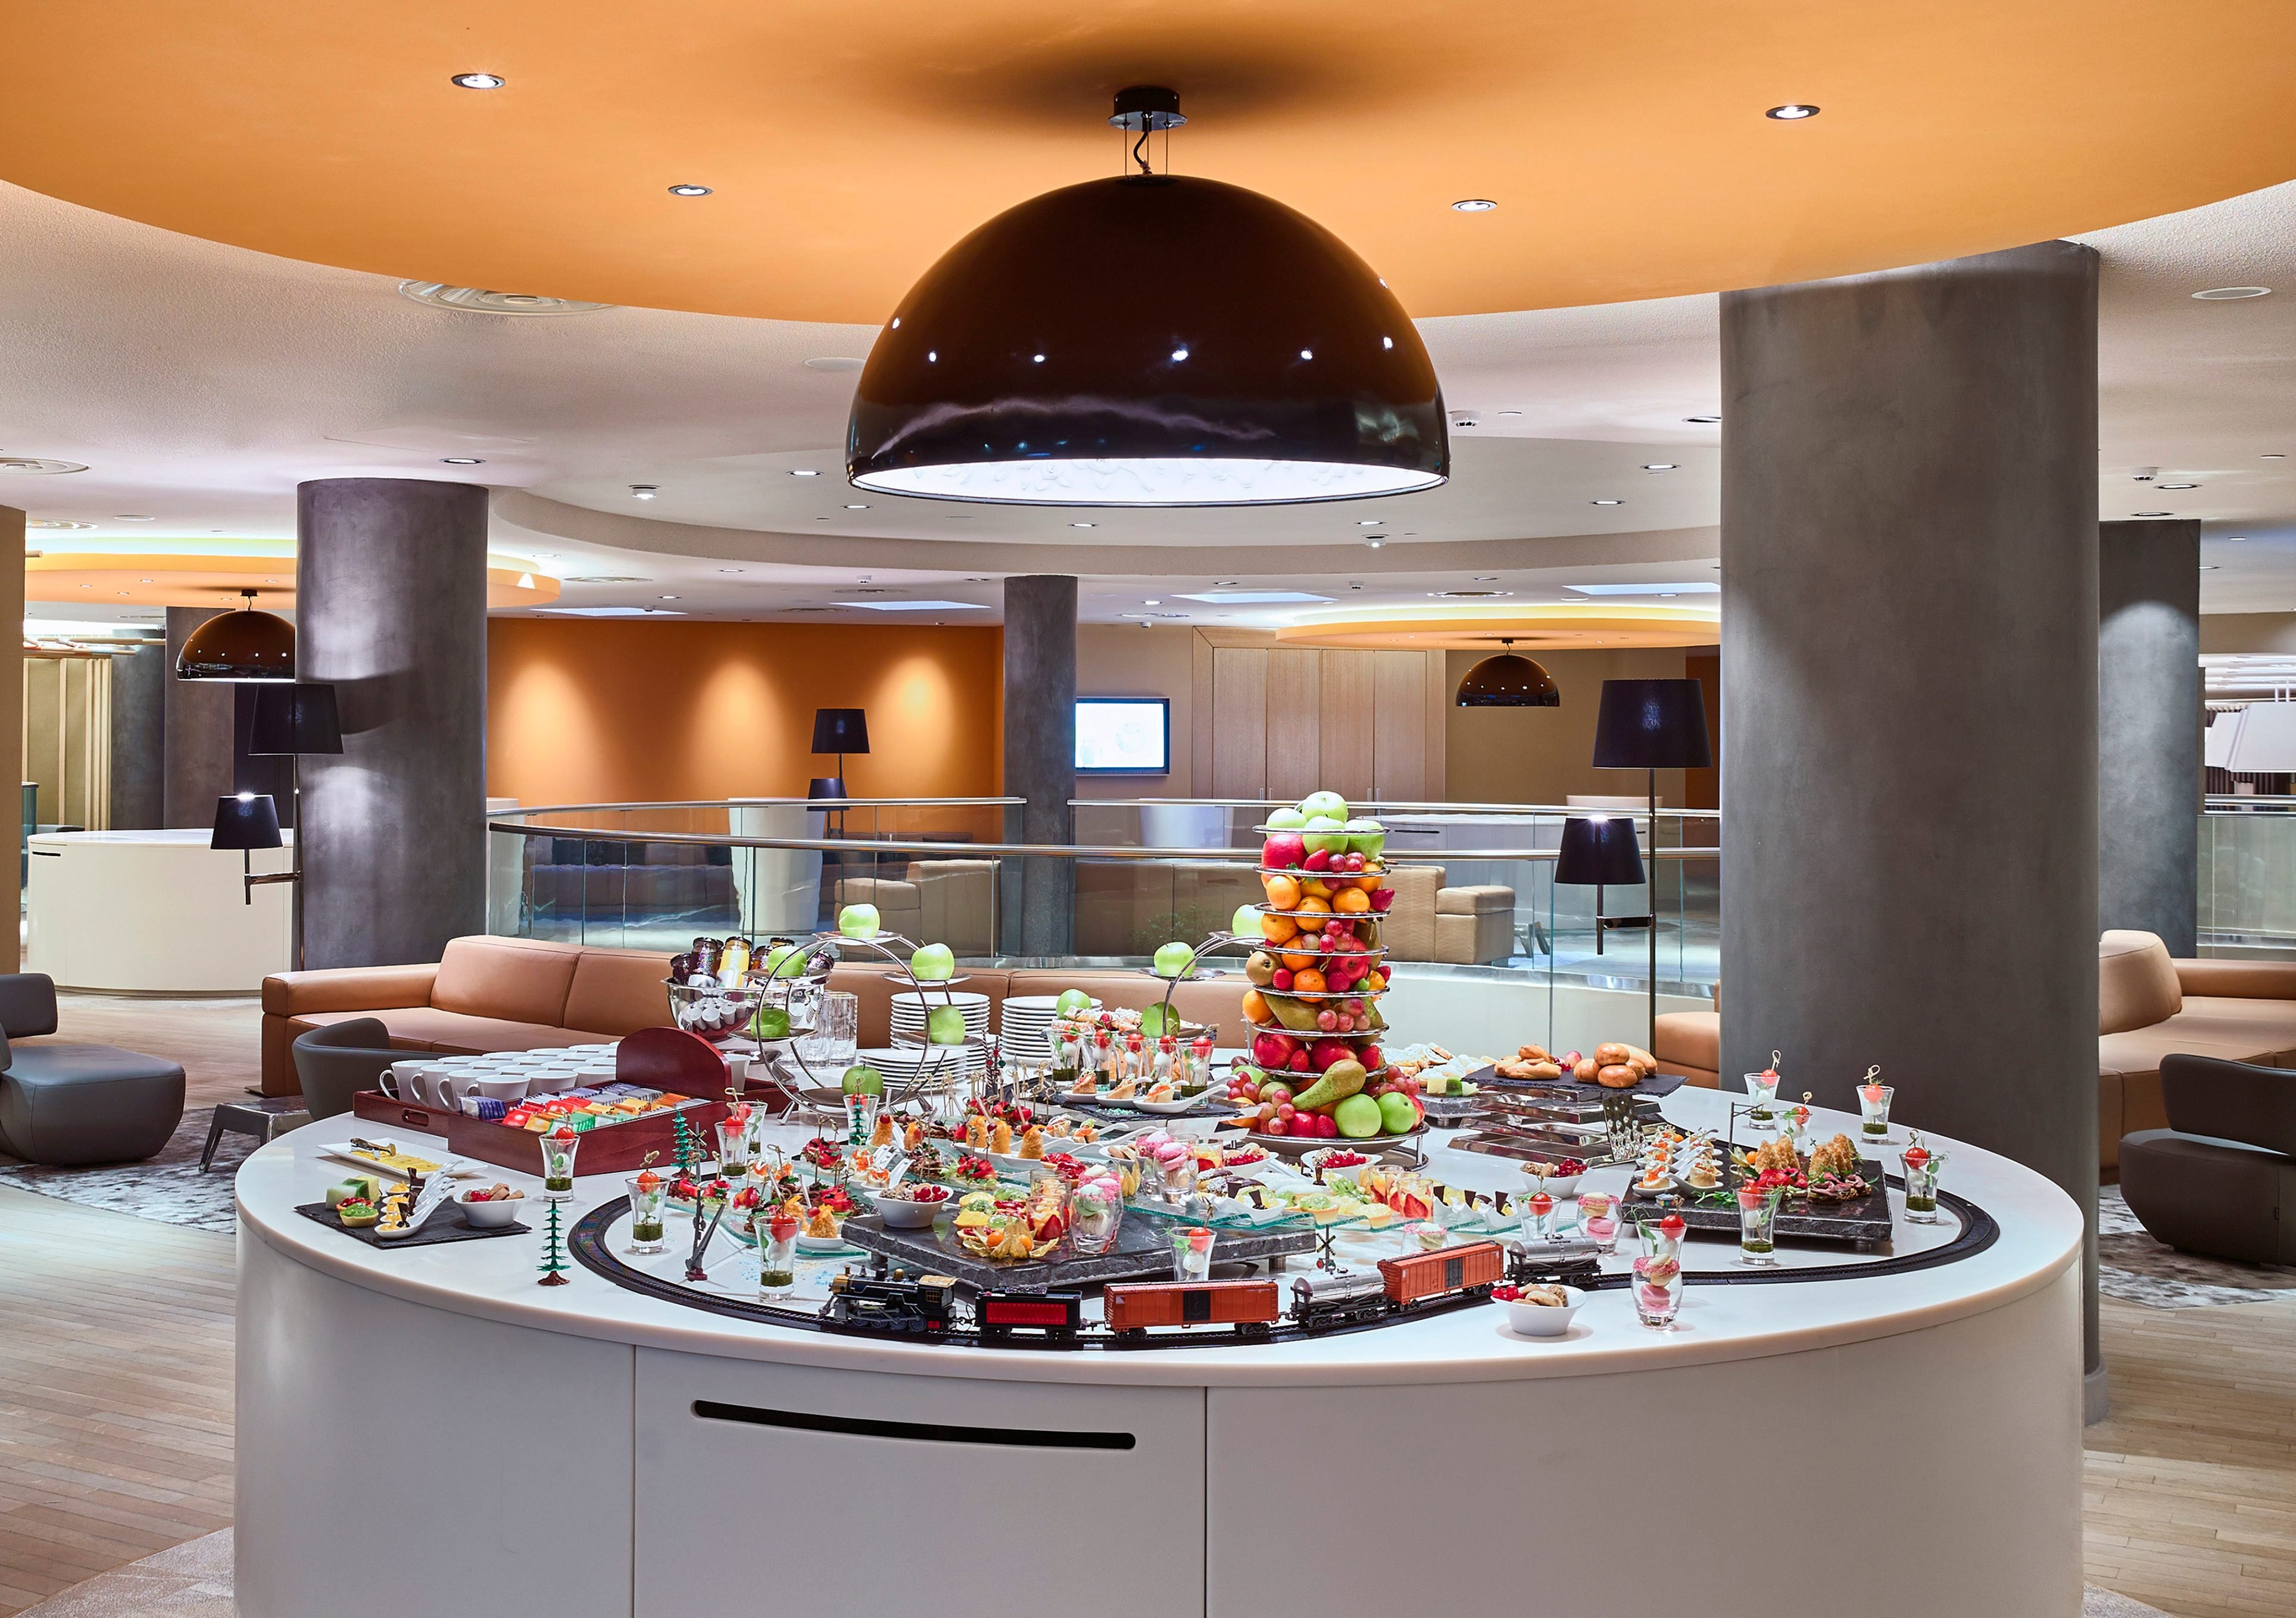 Breakfast buffet in Hotel in Moscow